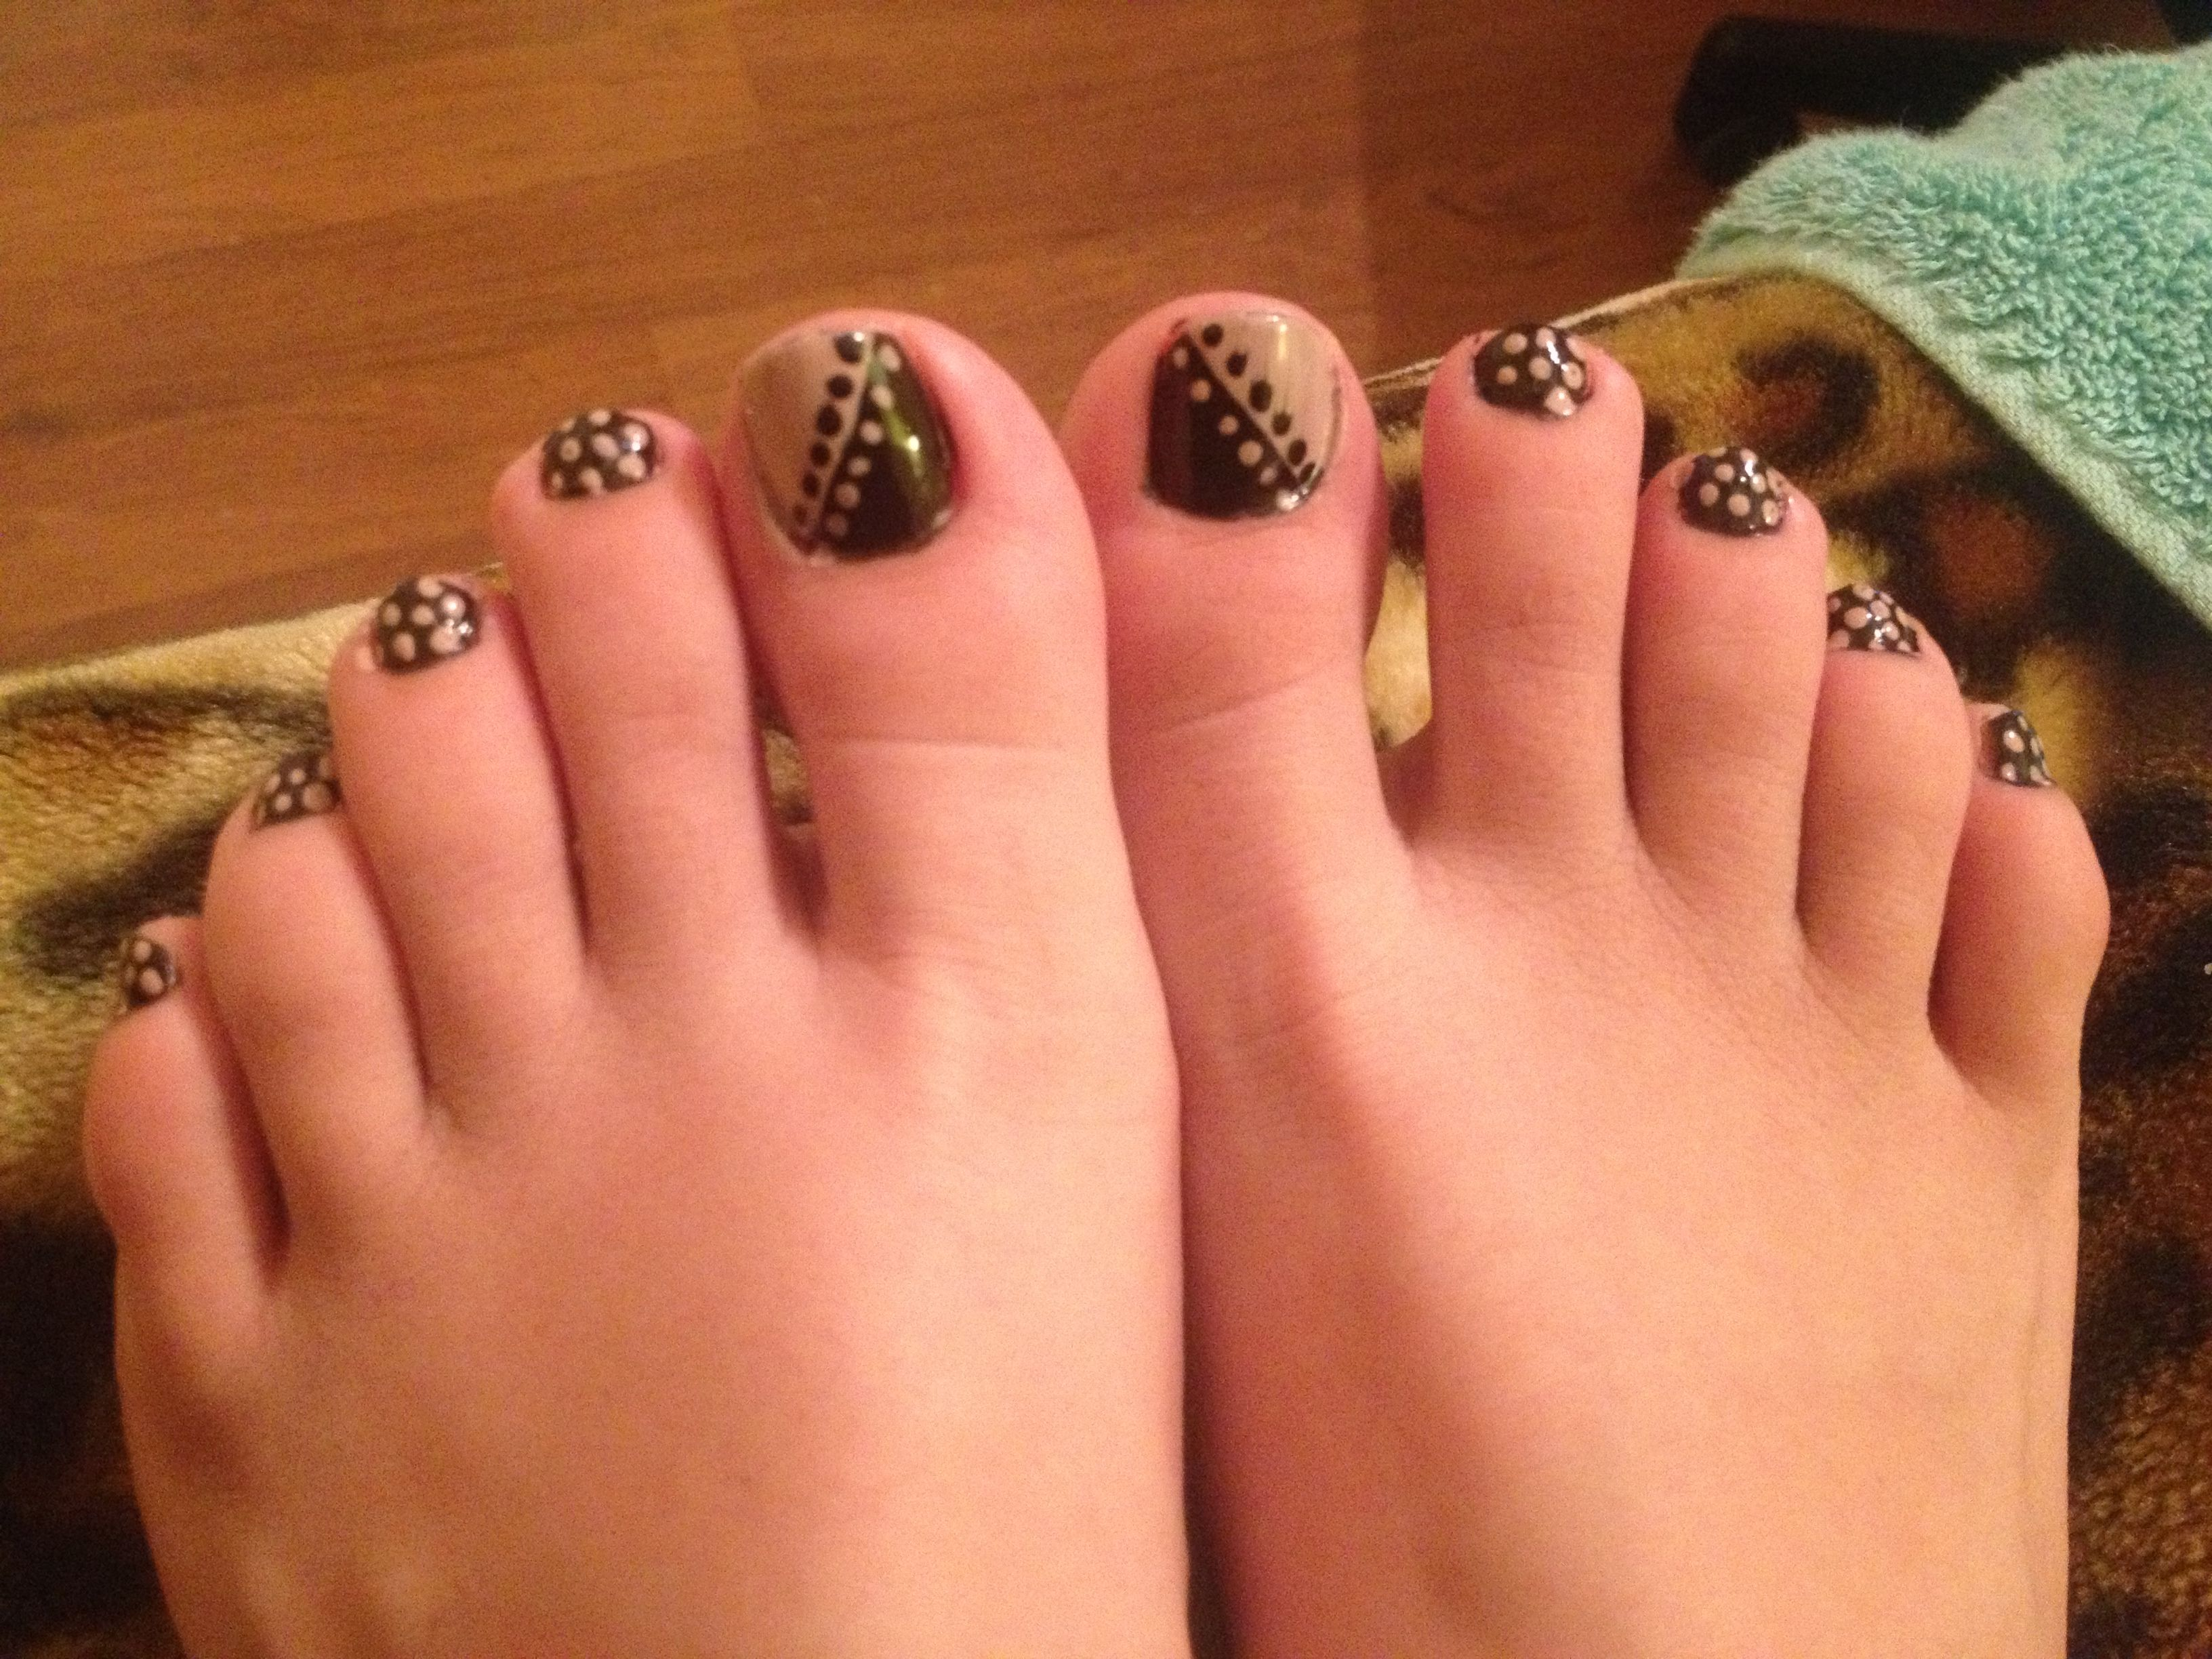 Diy simple toe nail design with polka dots twotone with polka dots